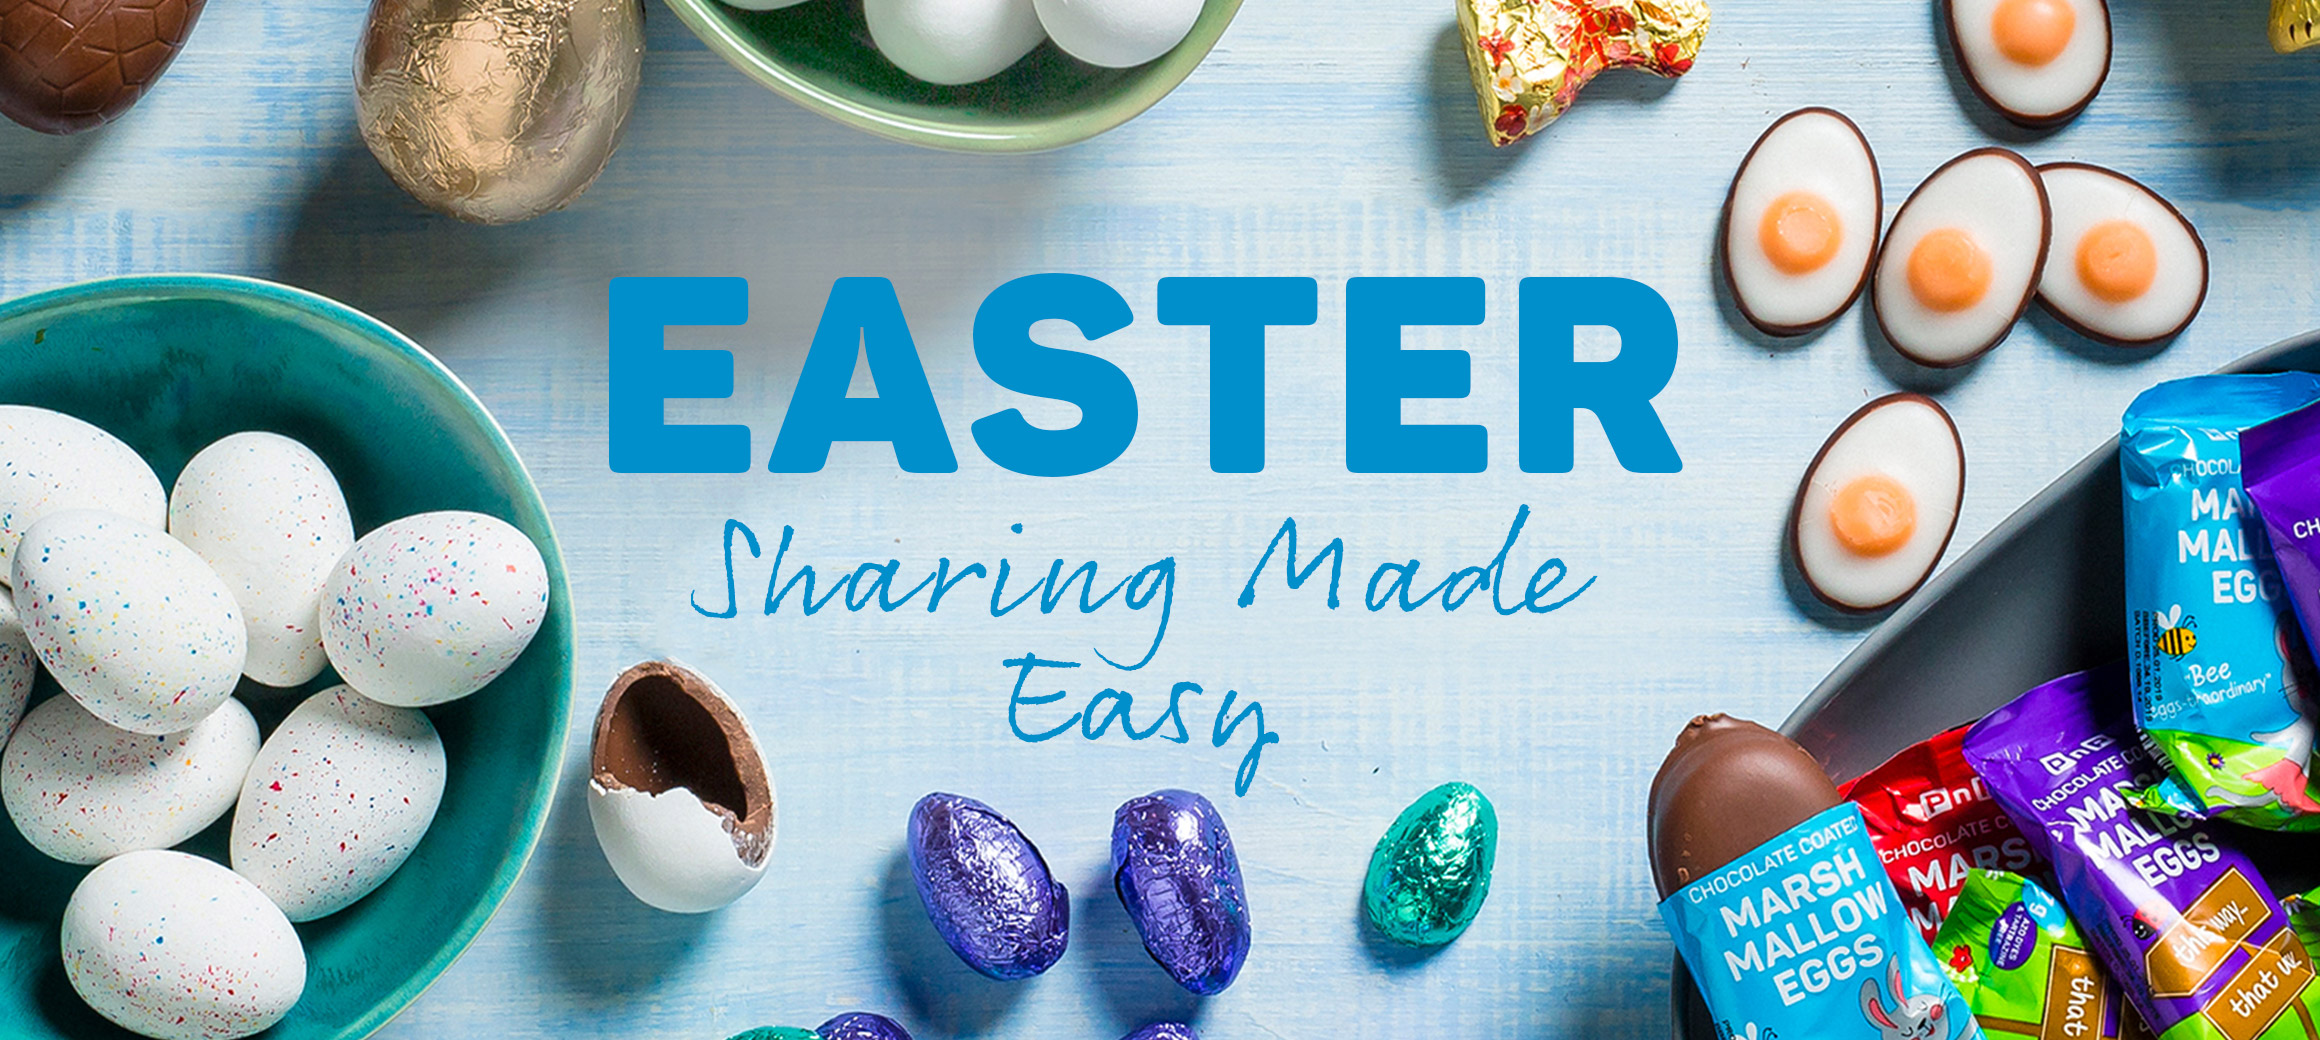 Easter Sharing Made Easy